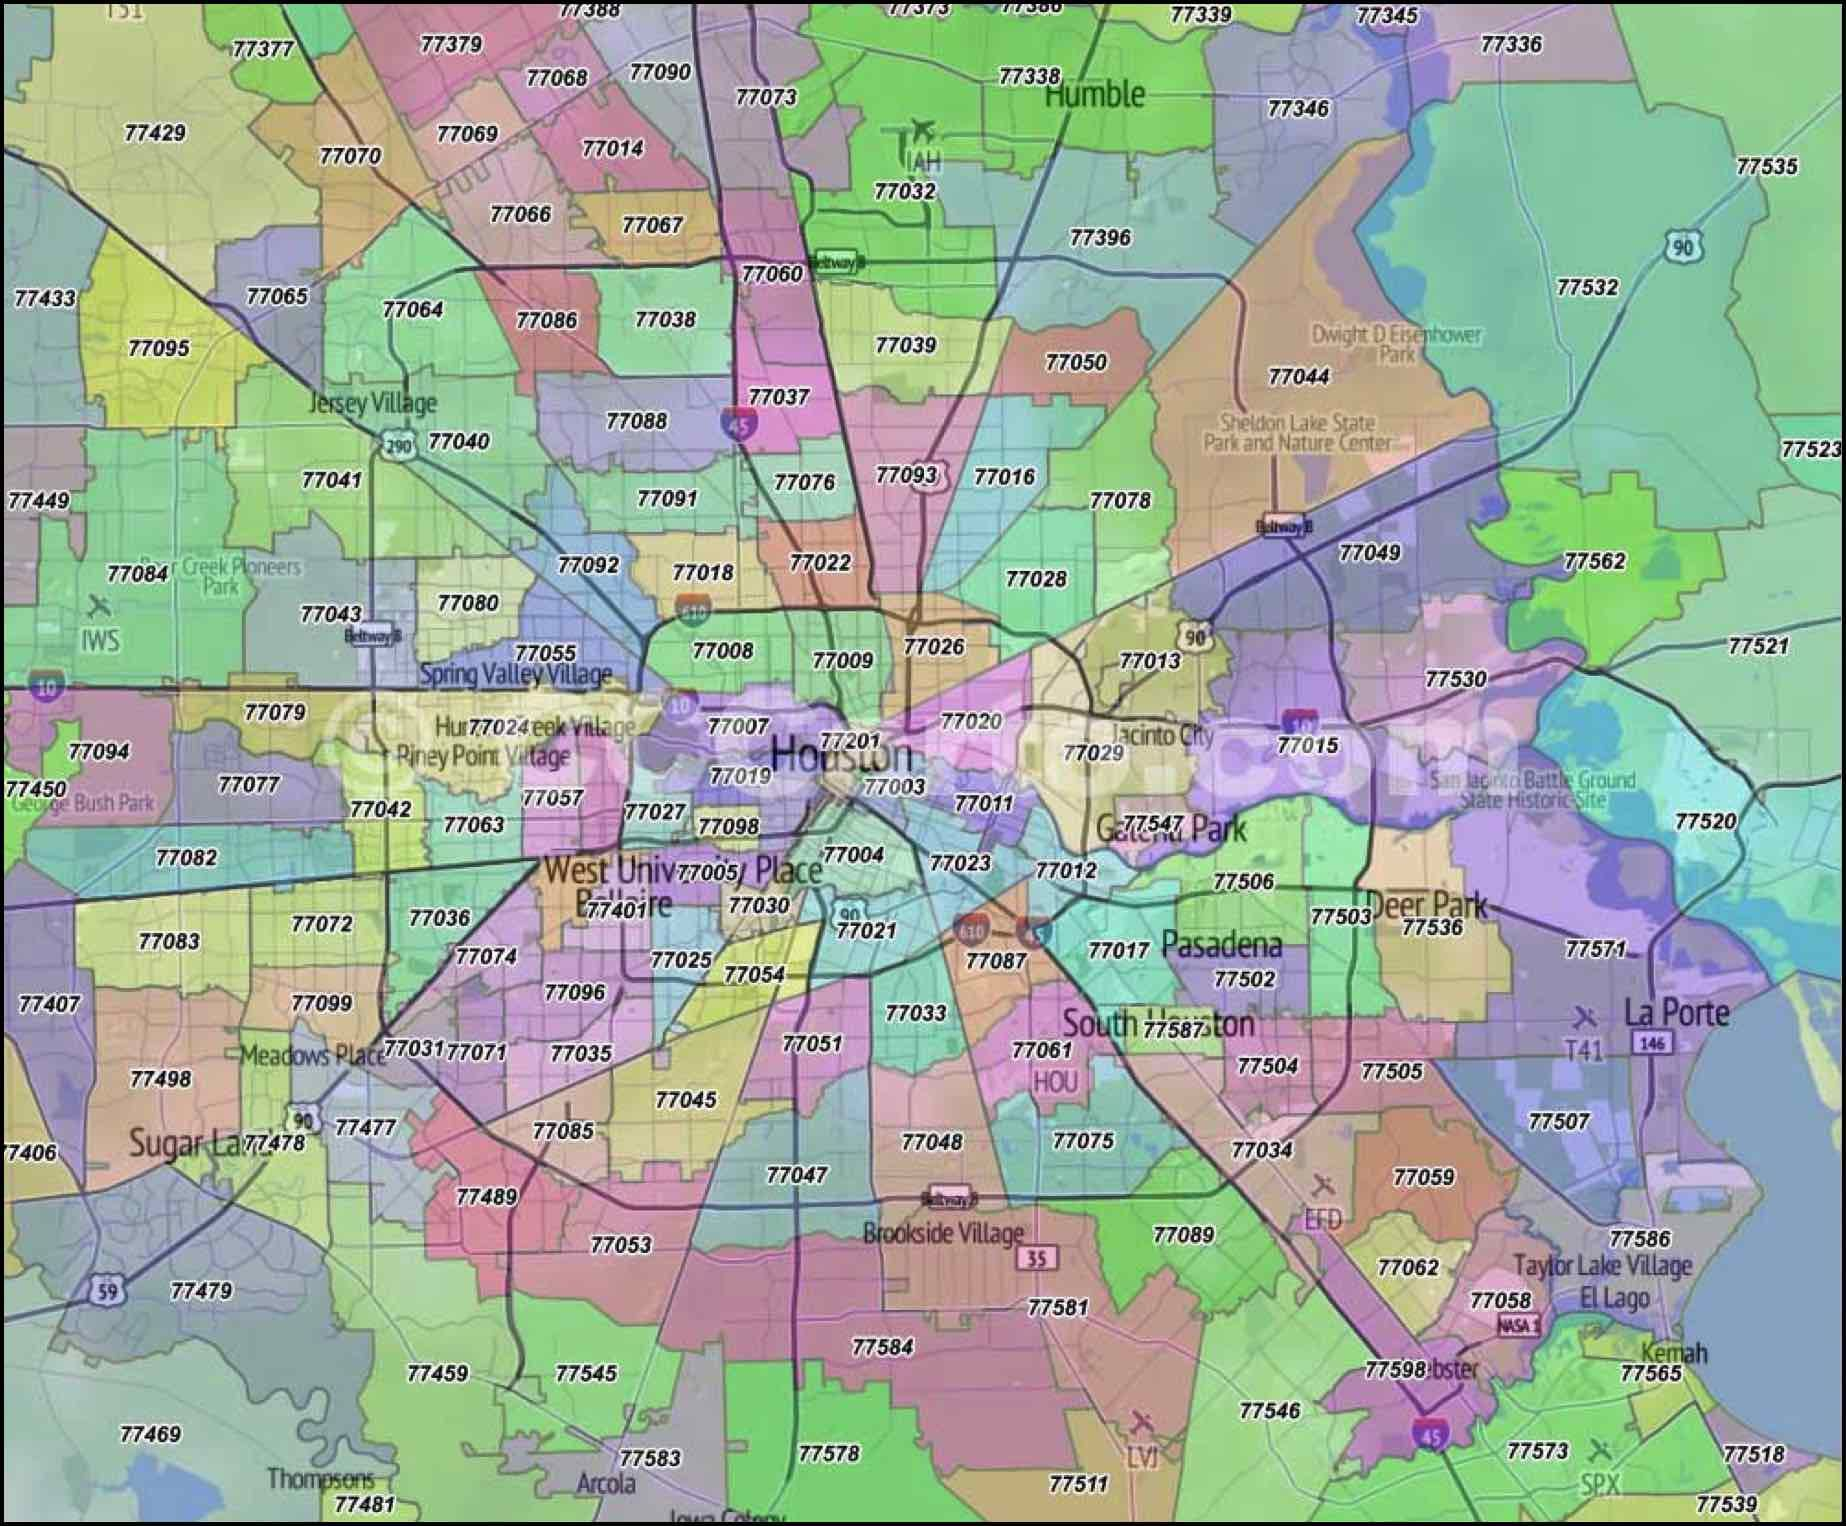 Harris County Zip Code Map Houston Zip Code Map | Houston zip code map, Zip code map, Houston map